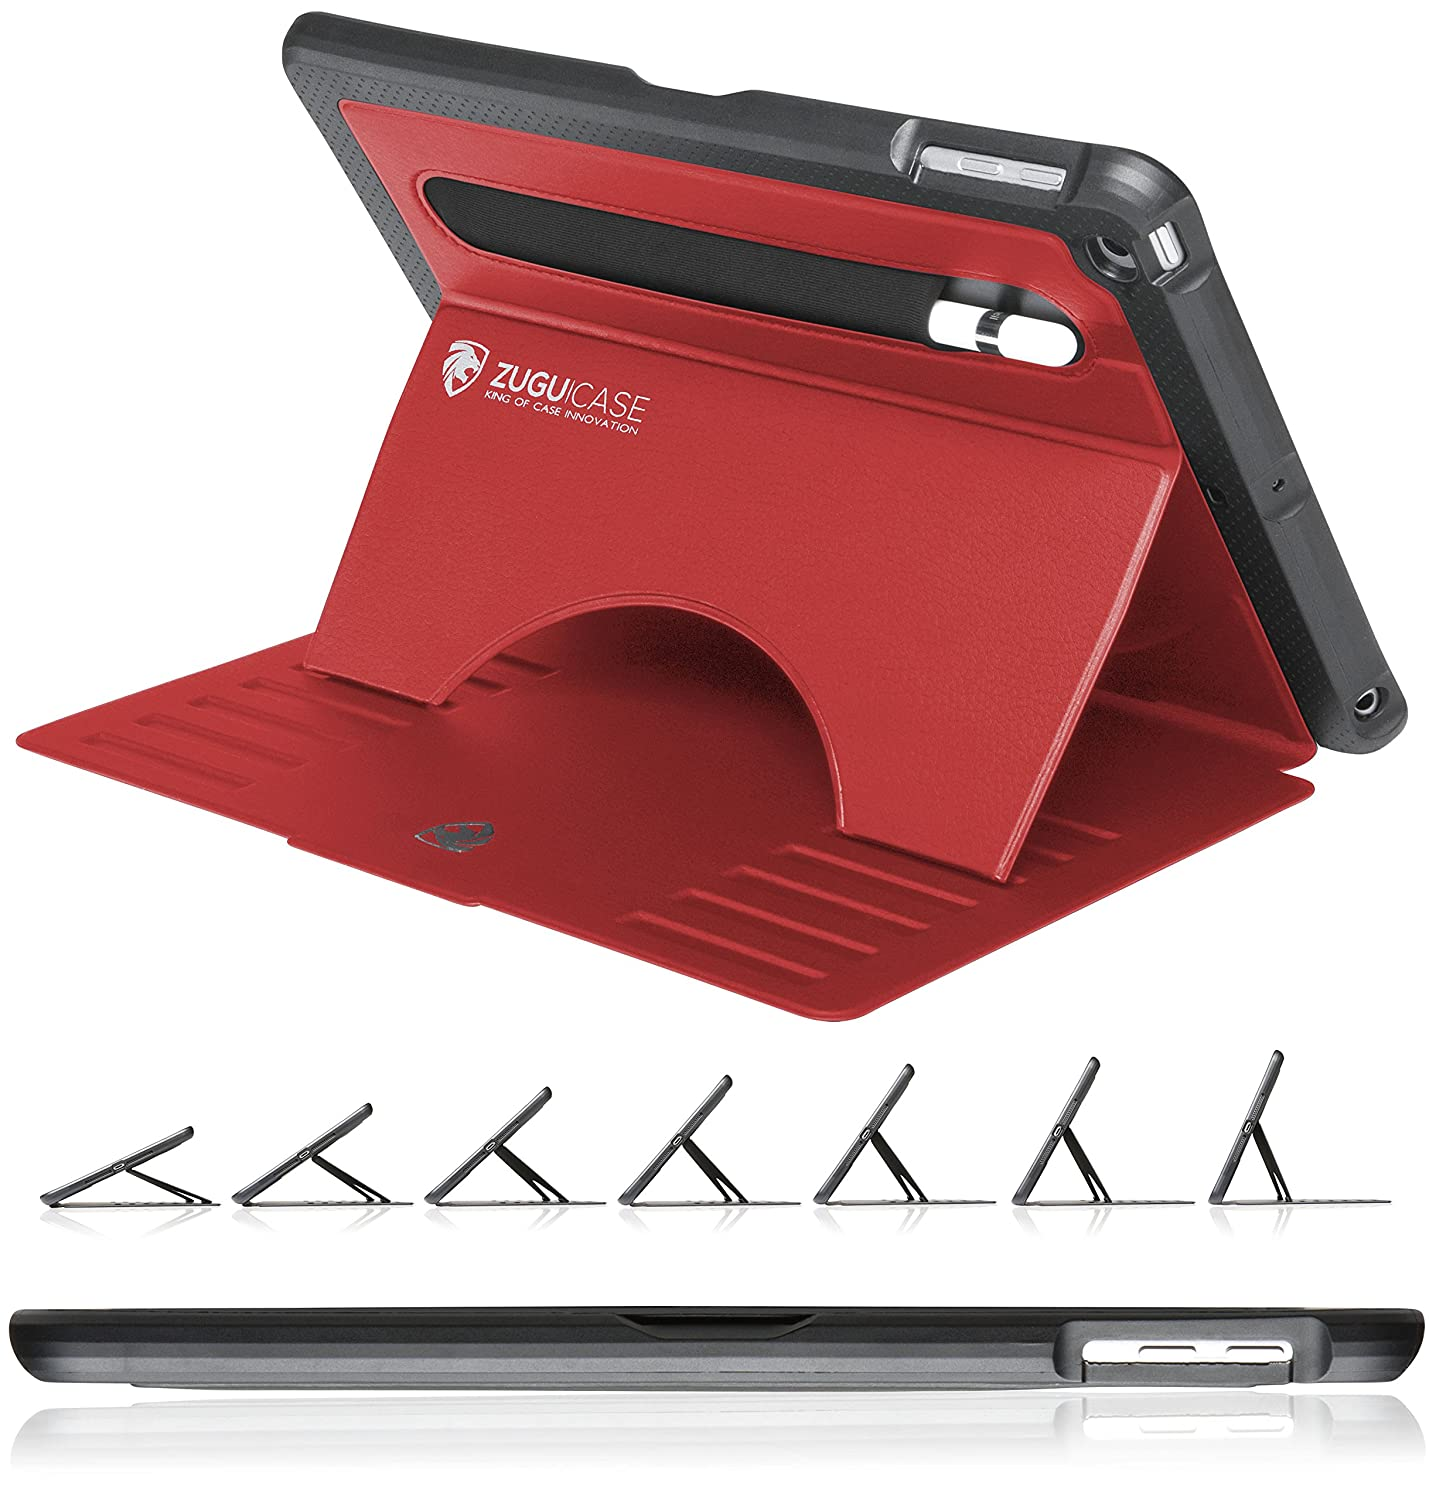 ZUGU CASE - 2018/2017 iPad 5 & 6 Gen (9.7 inch) & iPad Air 1 Prodigy X Case - Very Protective But Thin + Convenient Magnetic Stand + Sleep/Wake Cover (Red)